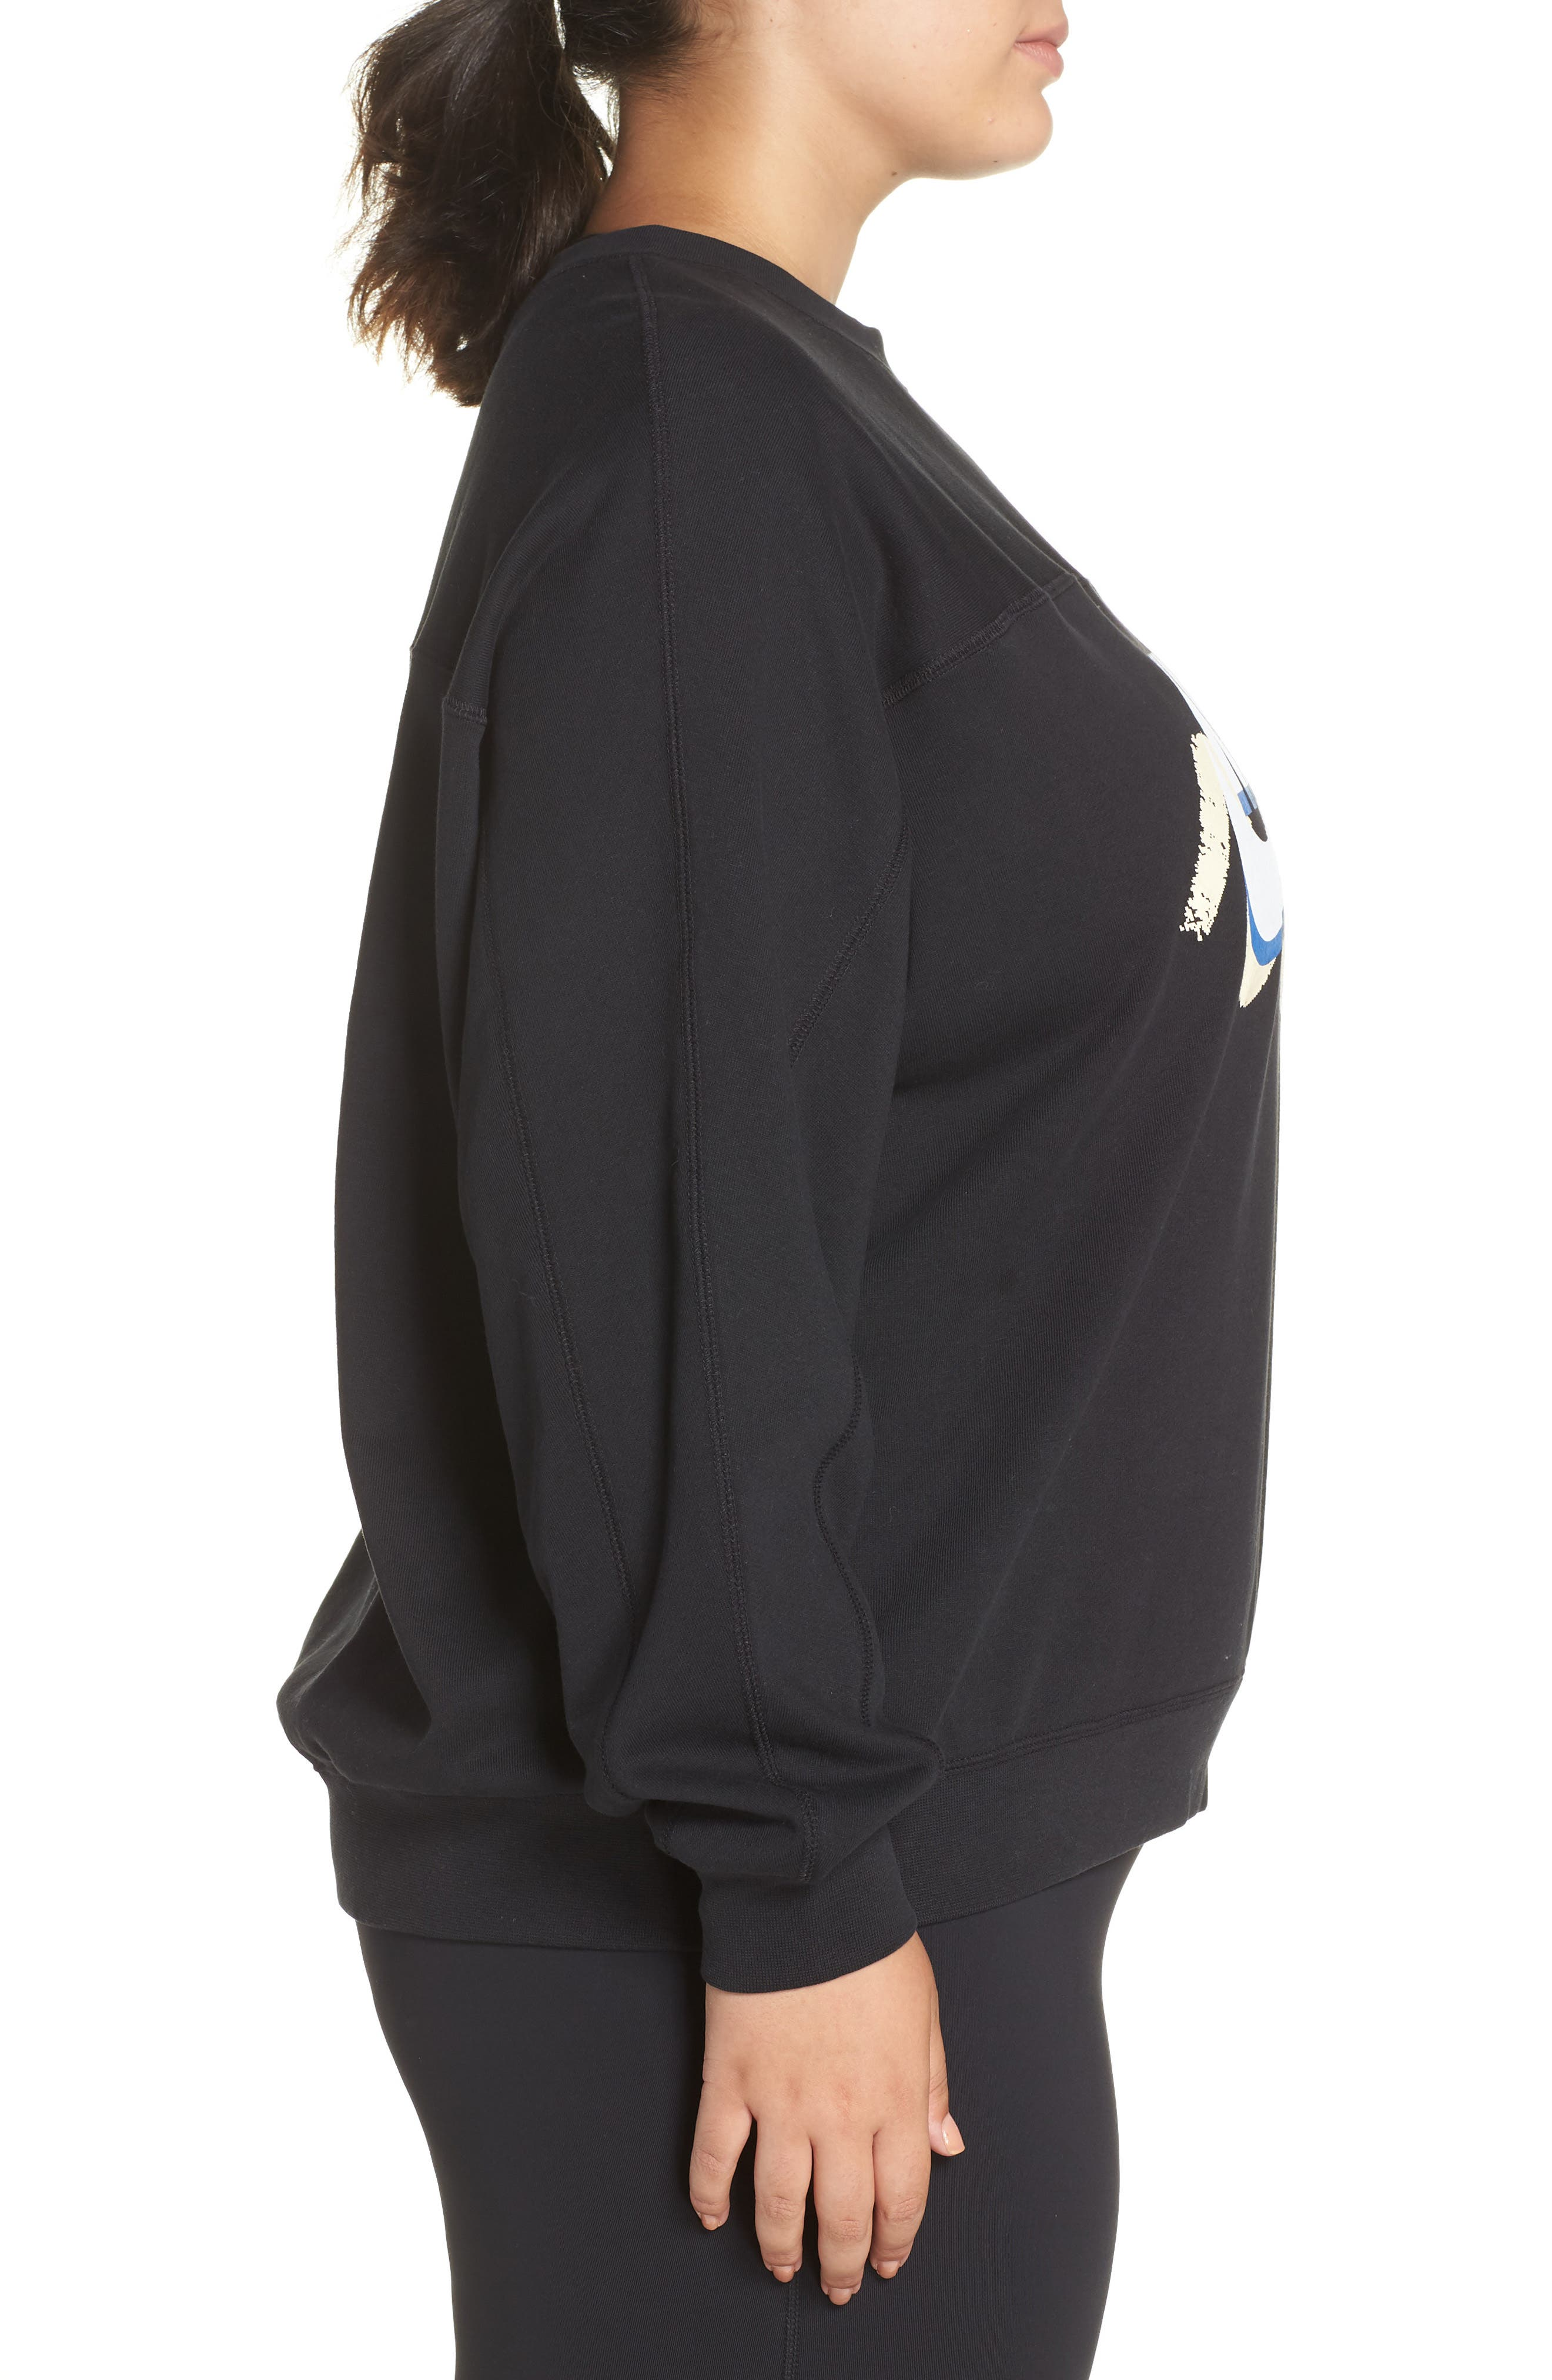 Sportswear Archive Sweatshirt,                             Alternate thumbnail 3, color,                             010